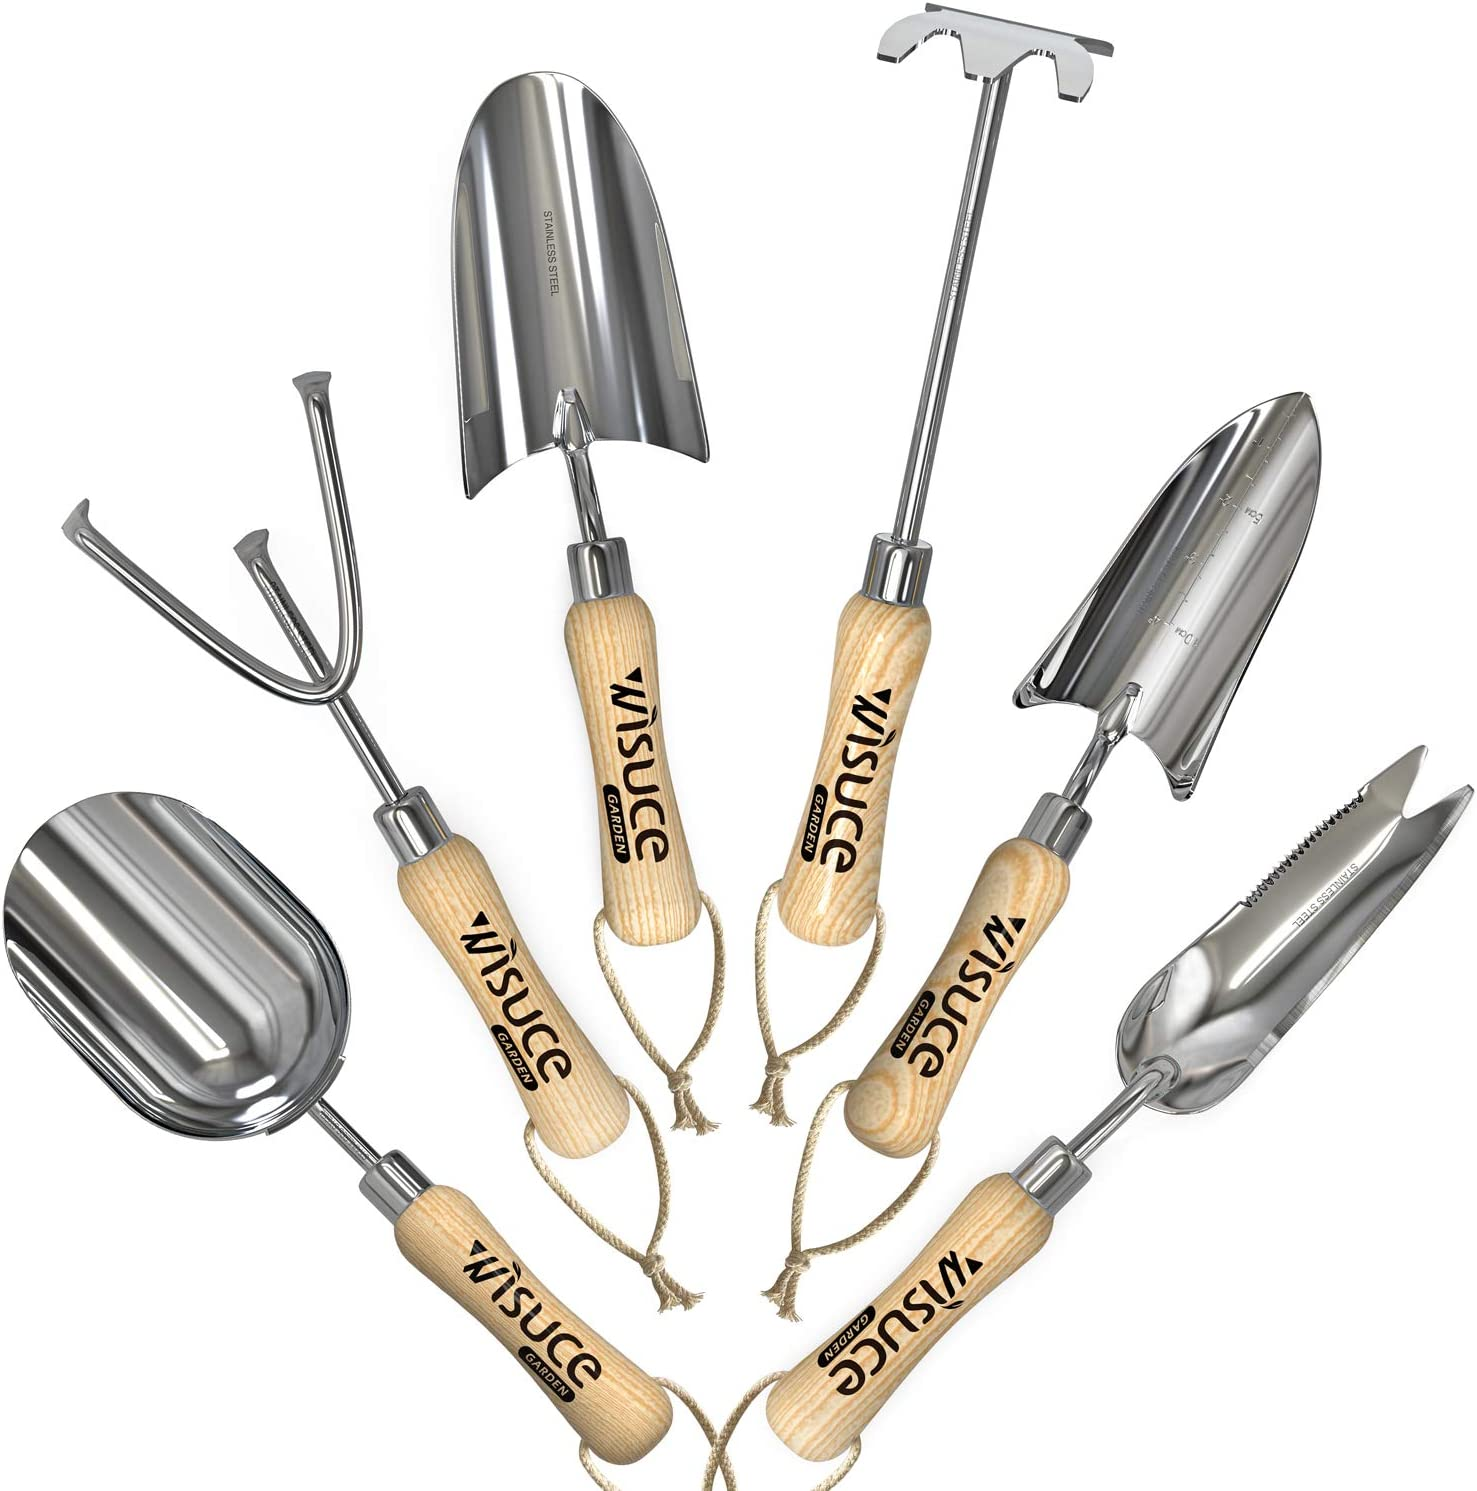 Wisuce Garden Tool Set, 6 Piece Heavy Duty Gardening Kit Includes Shovel, Transplanter, Soil Scoop, Weeder, Hoe and Cultivator with Wood Handle Gardener Gift Idea for Women and Men